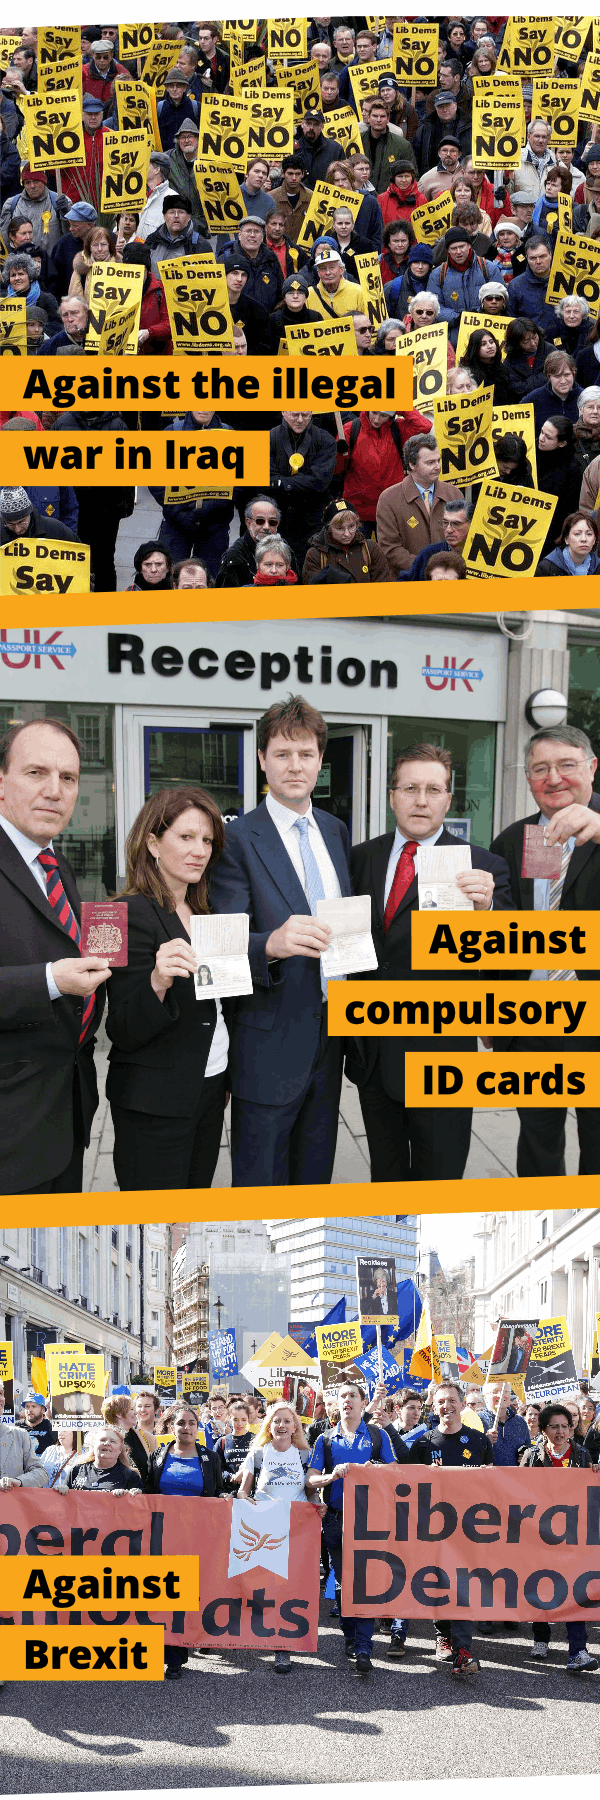 Against the Iraq War, against compulsory ID cards and against Brexit